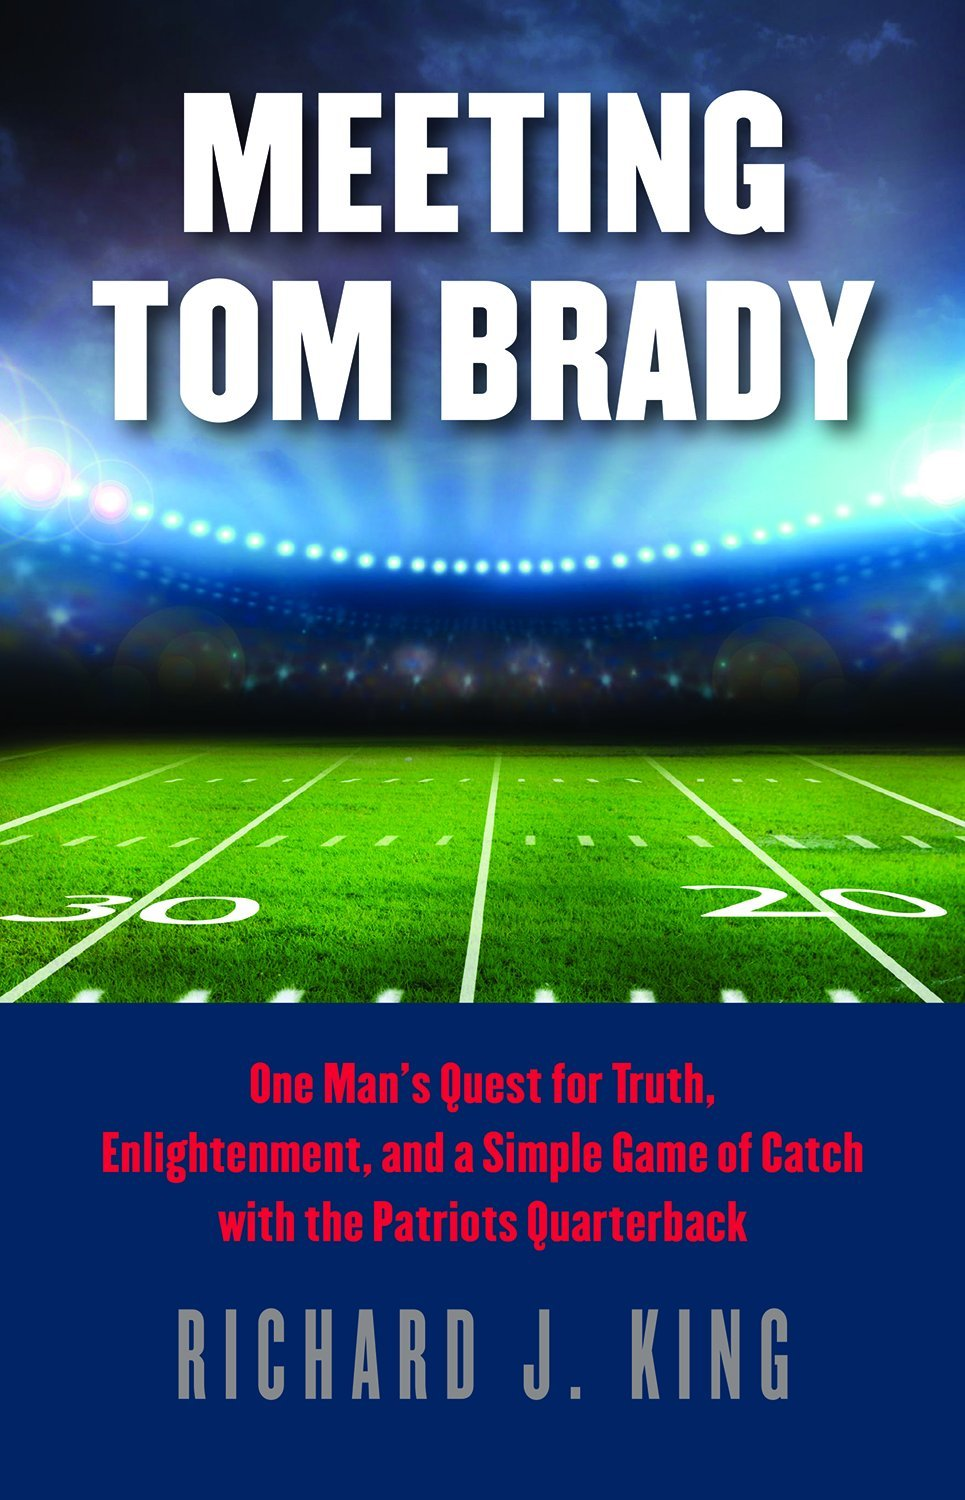 Download Meeting Tom Brady: One Man's Quest for Truth, Enlightenment, and a Simple Game of Catch with the Patriots Quarterback pdf epub